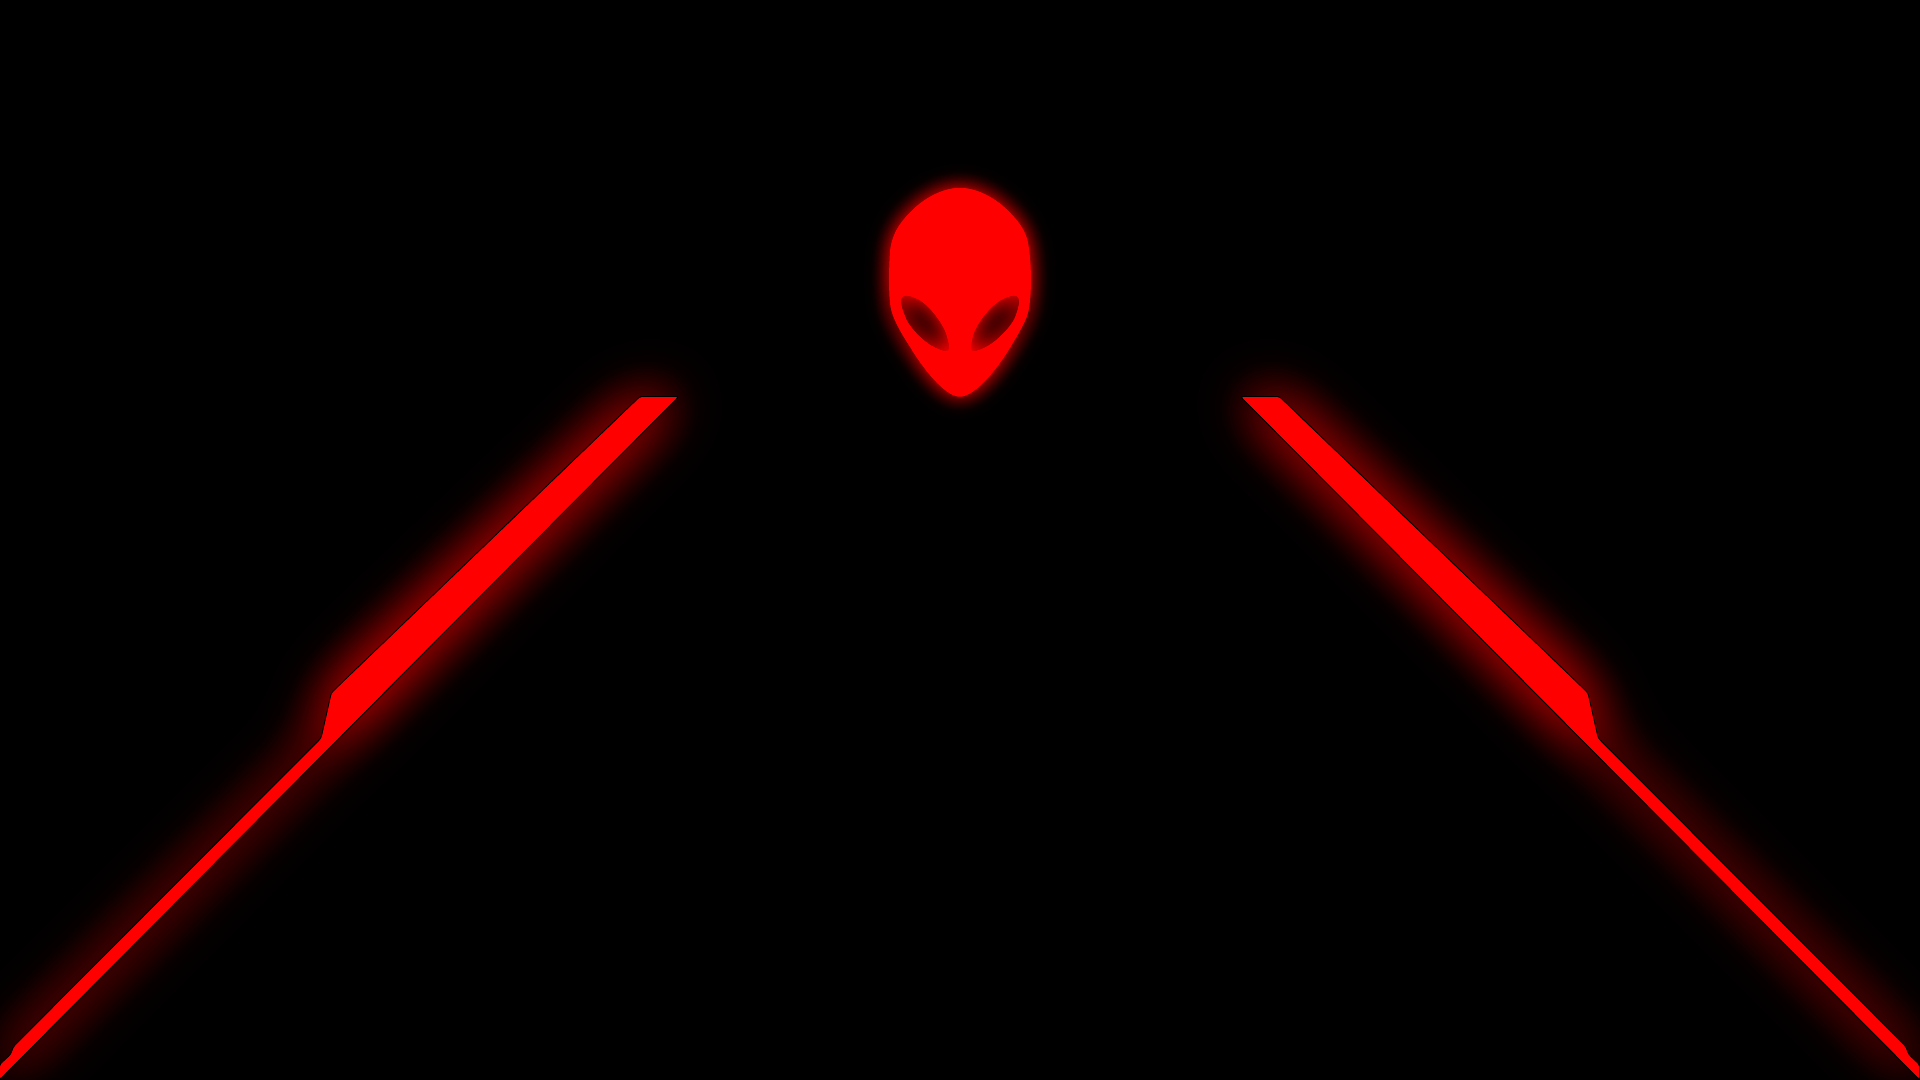 alienware wallpapers red - photo #18